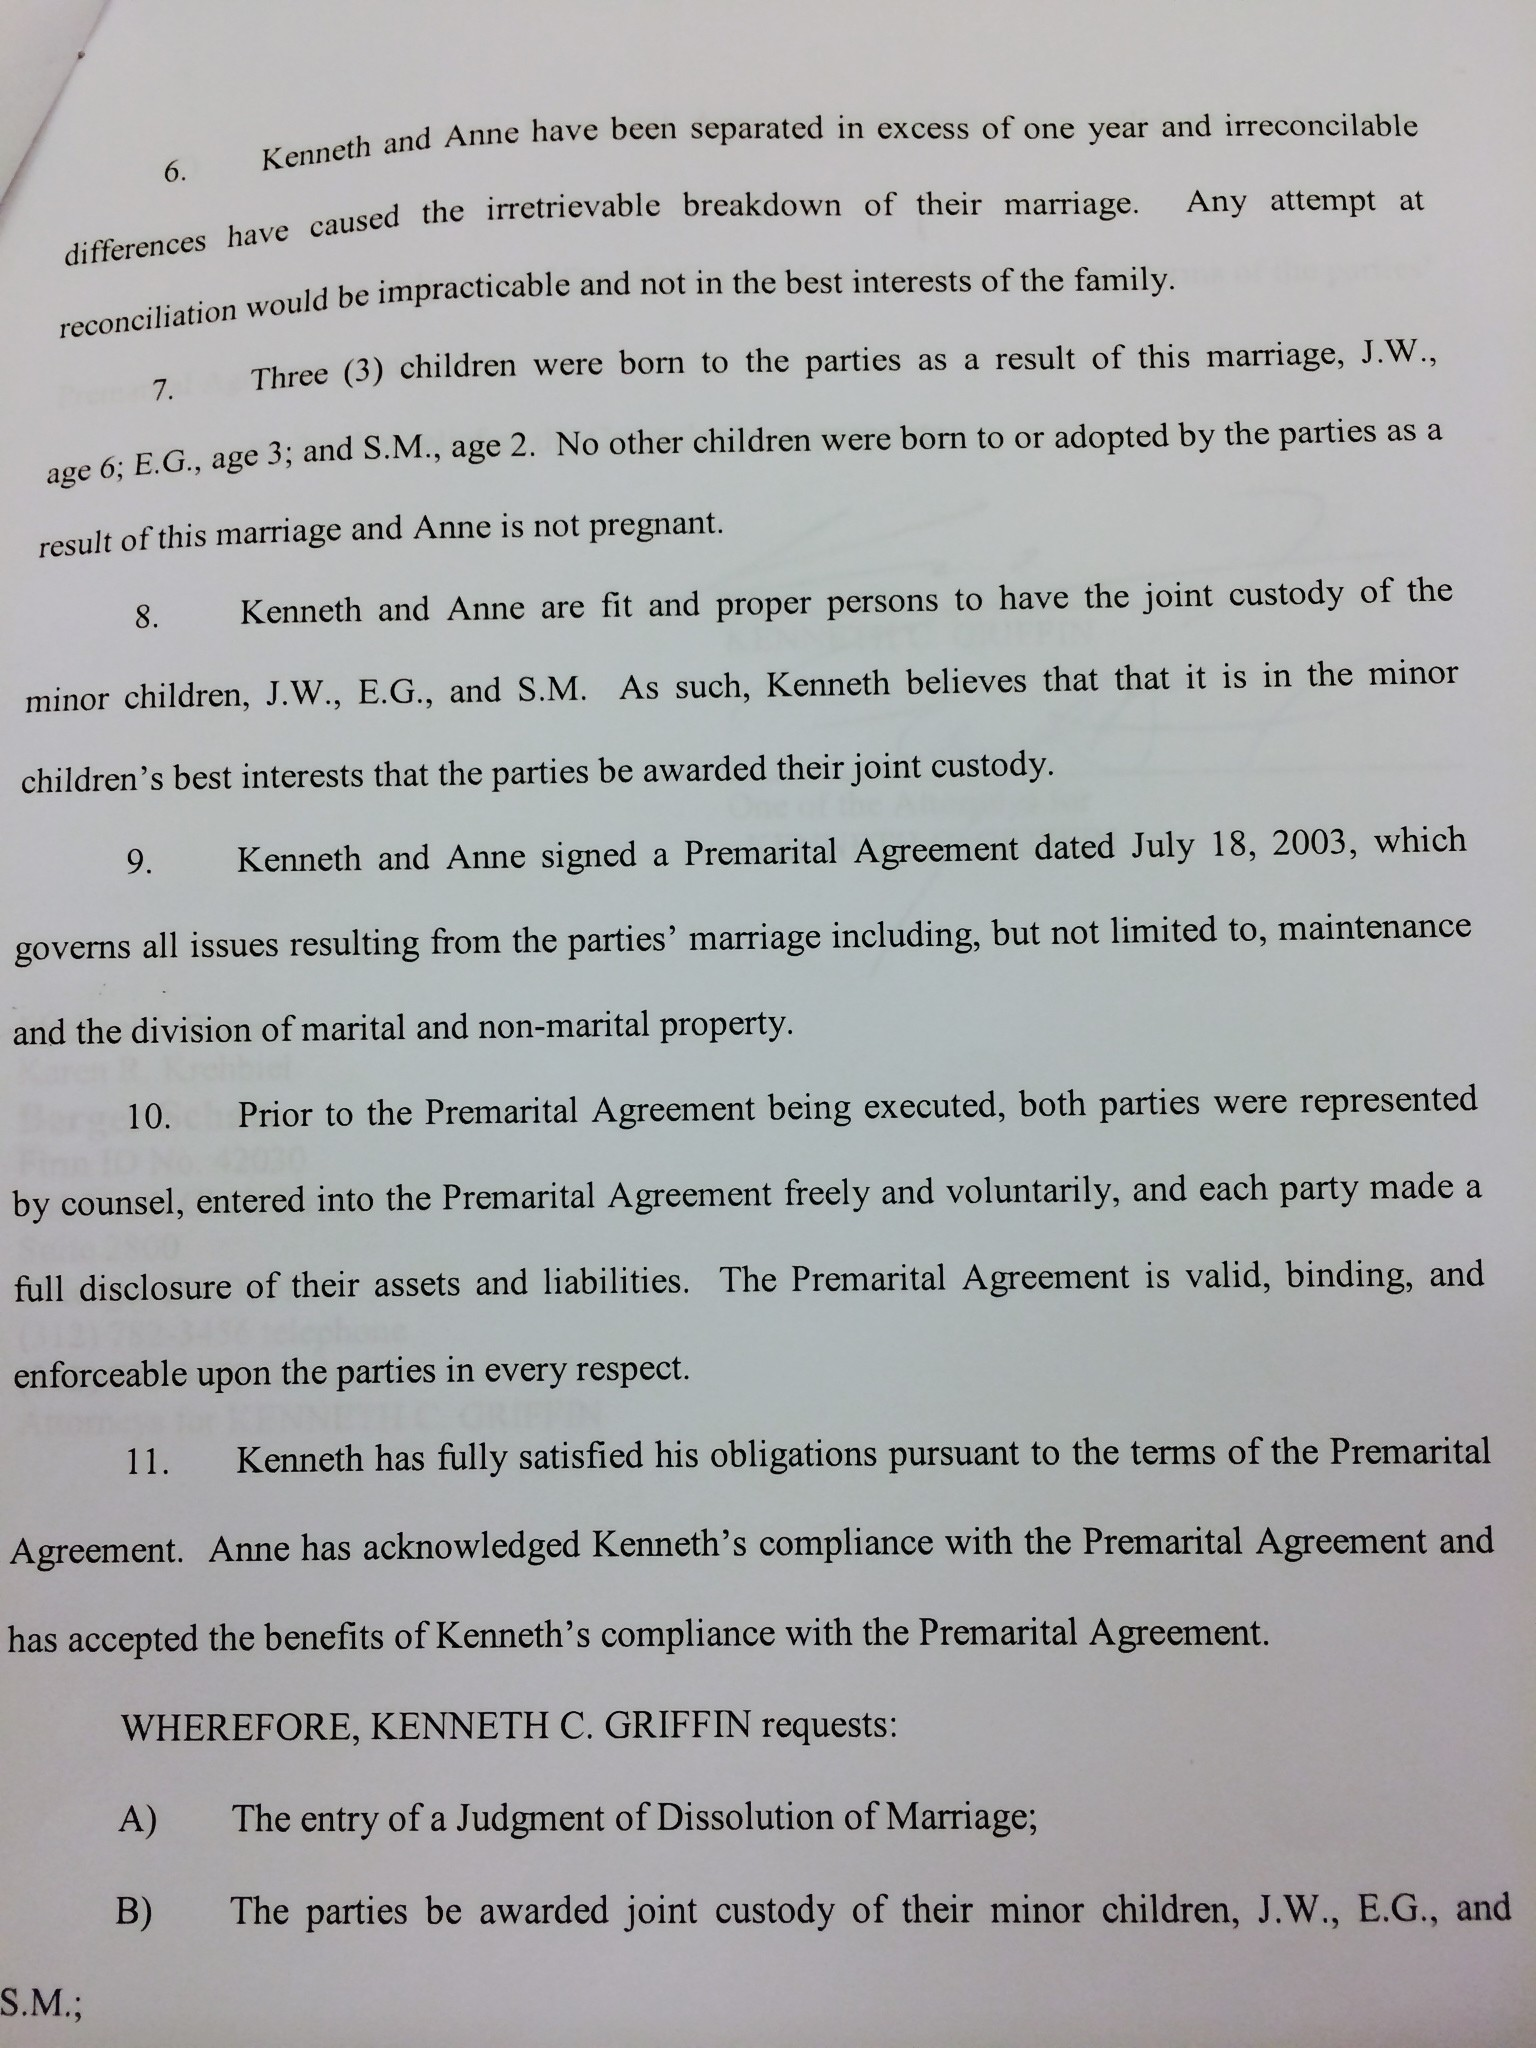 Page 2 - Griffin divorce filing - Baltimore Sun